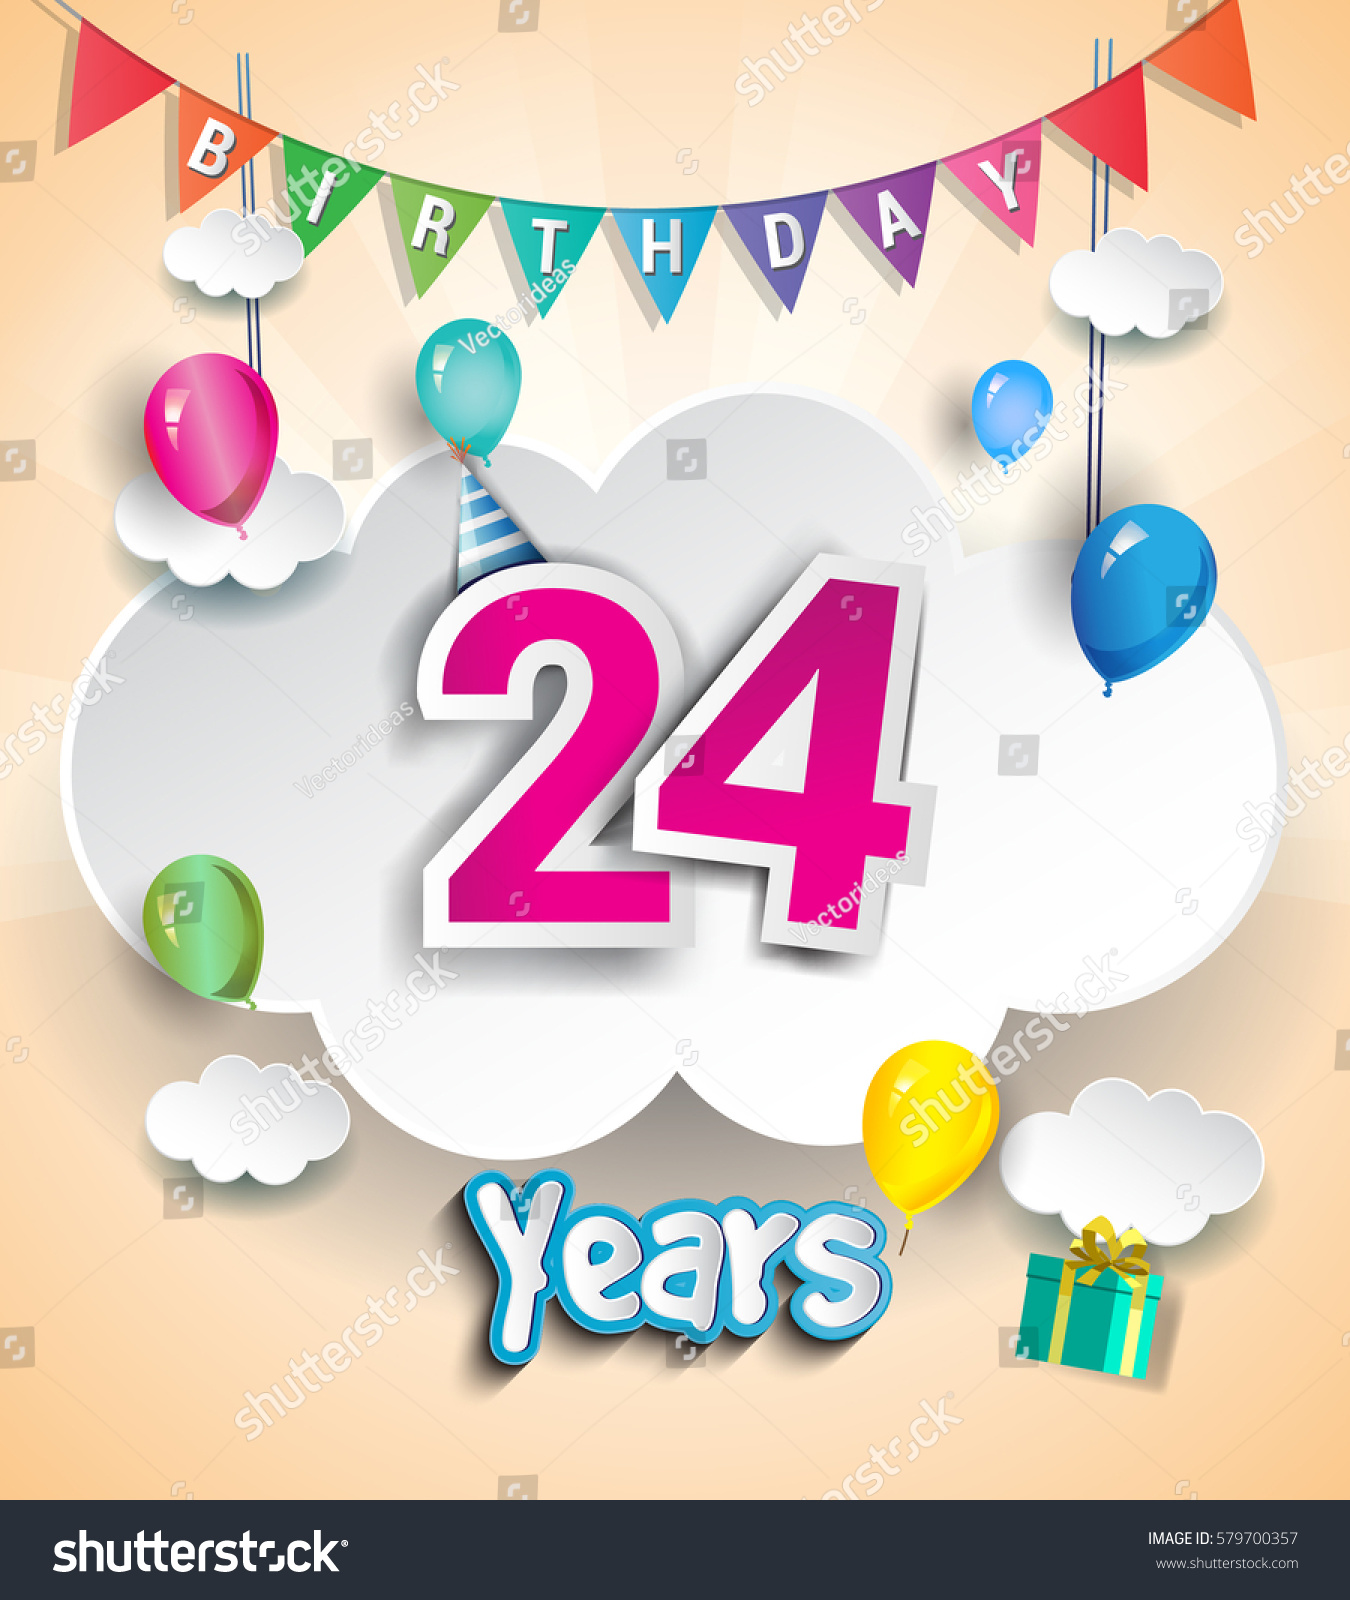 24 Years Birthday Design Greeting Cards Stock Vector Royalty Free